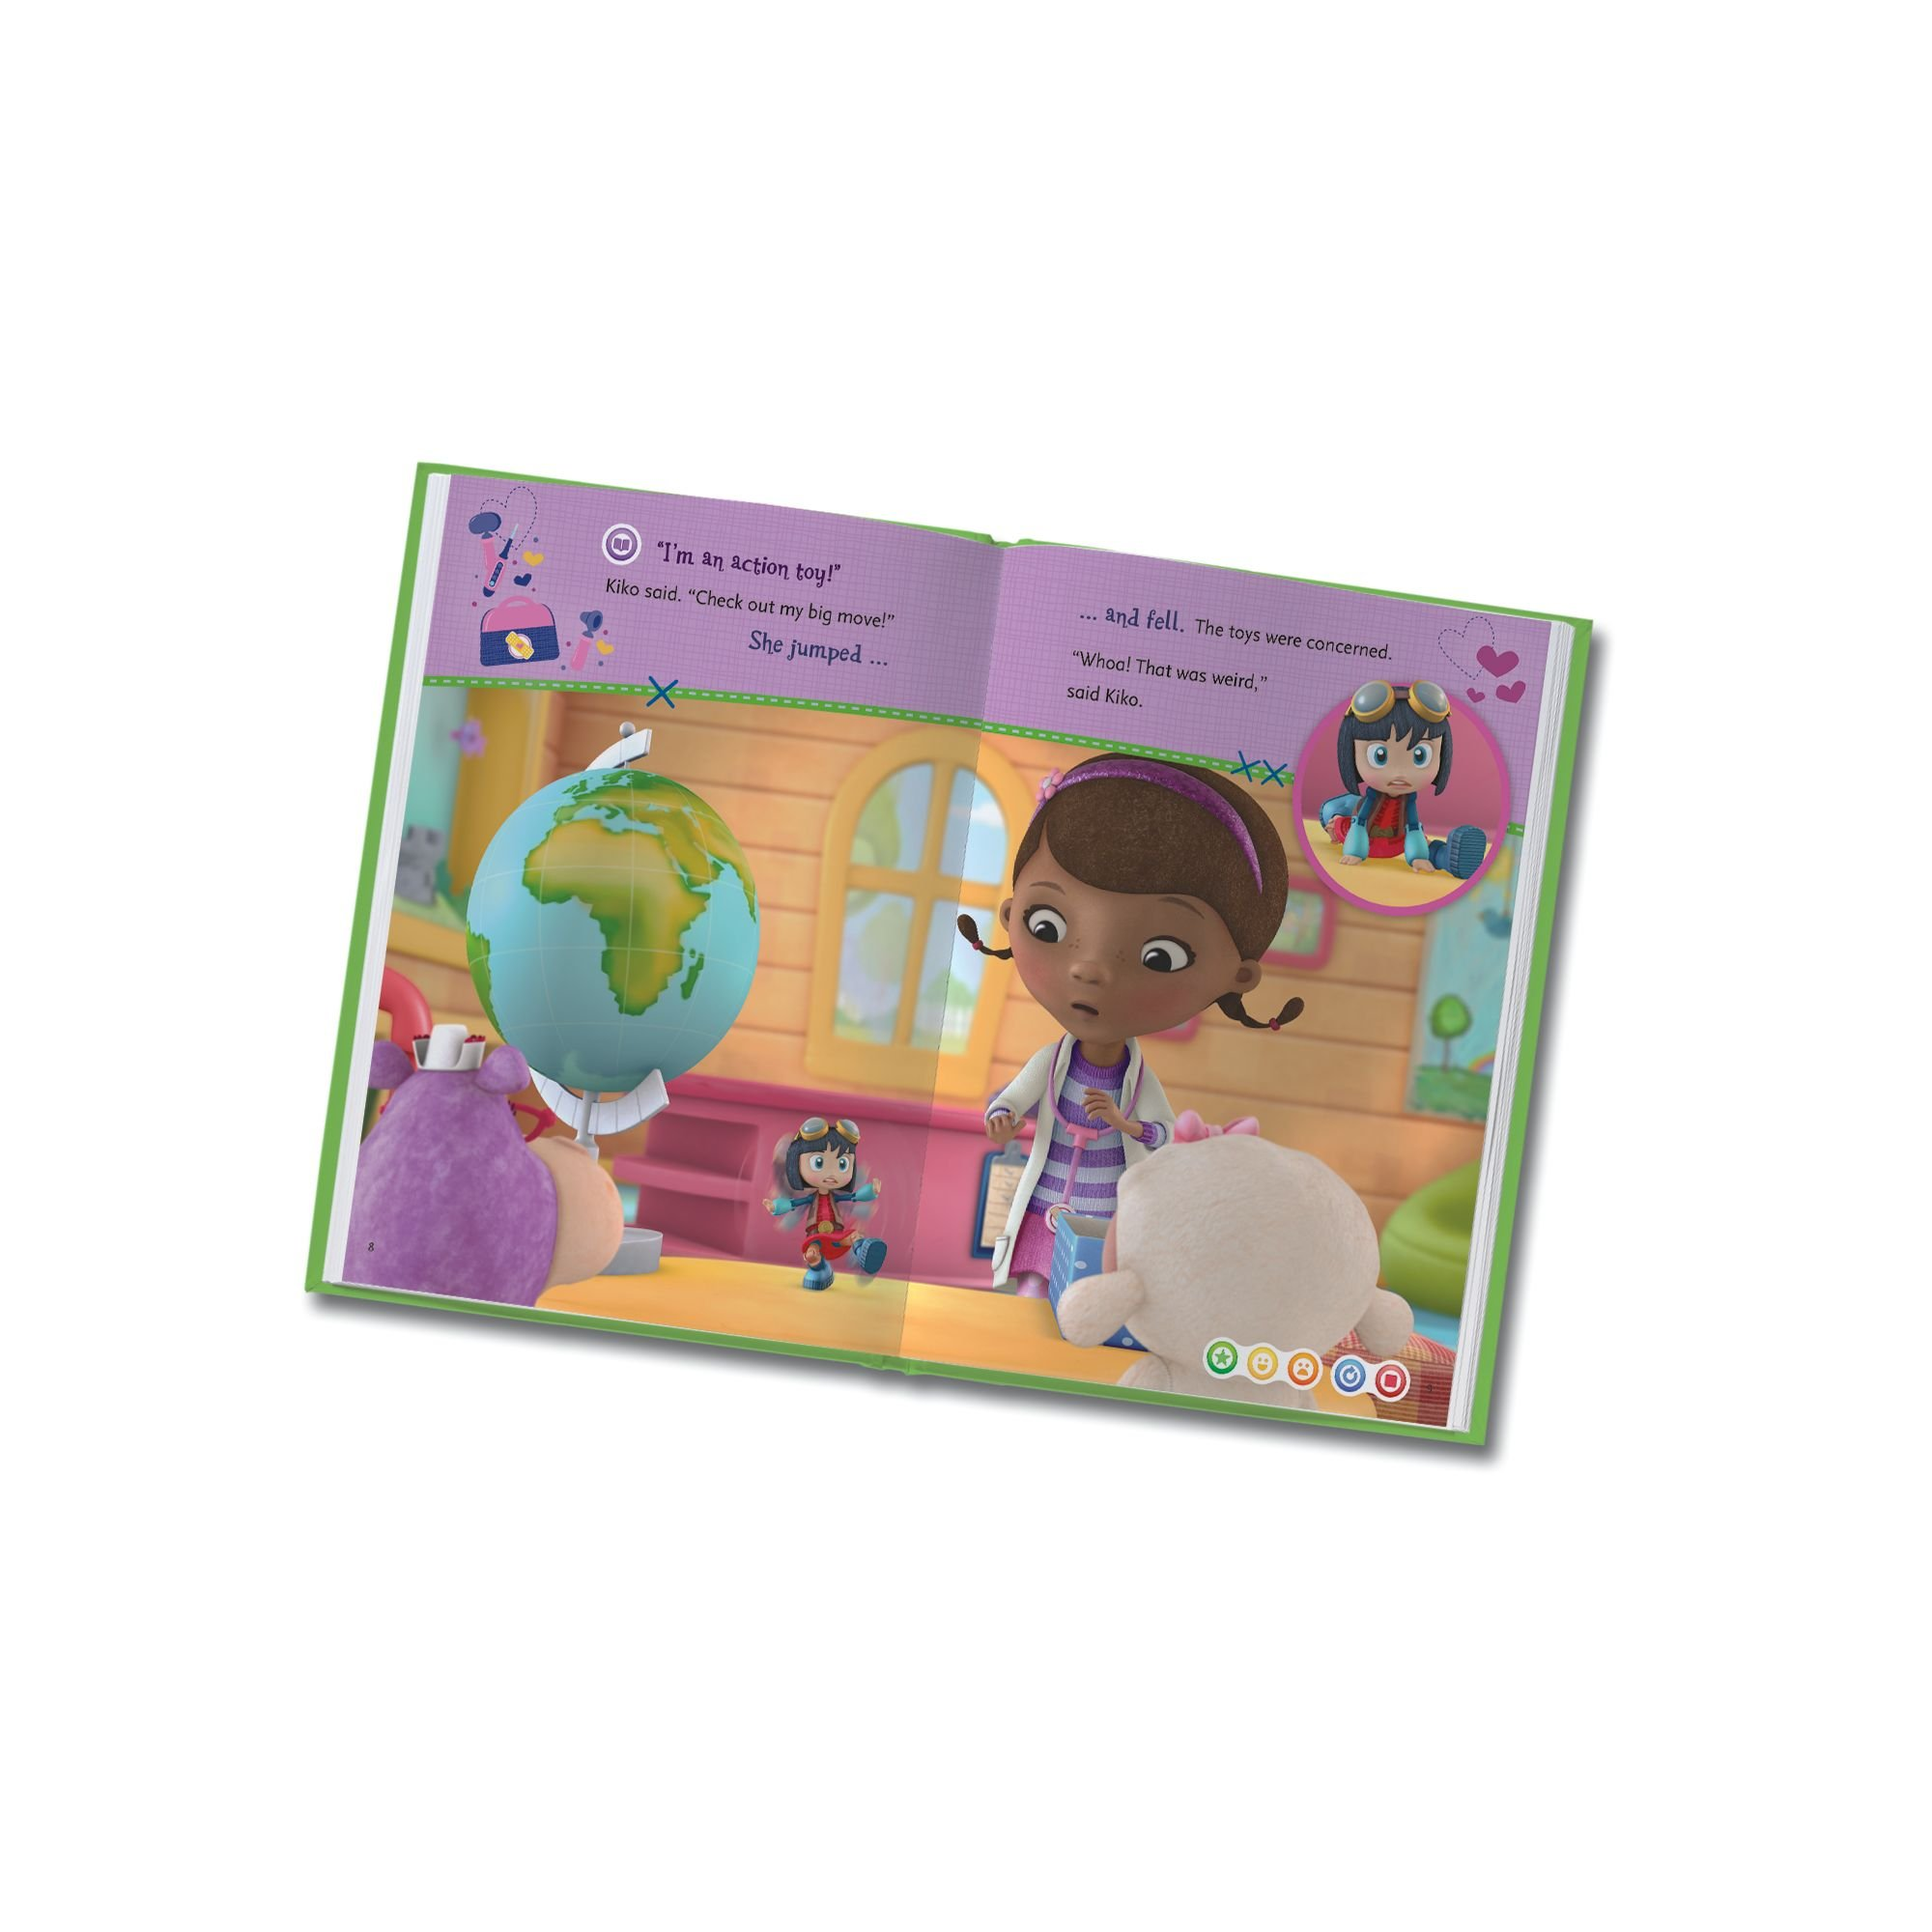 LeapFrog LeapReader: Disney Doc McStuffins: The New Girl Read On Your Own Book works with Tag by LeapFrog (Image #4)